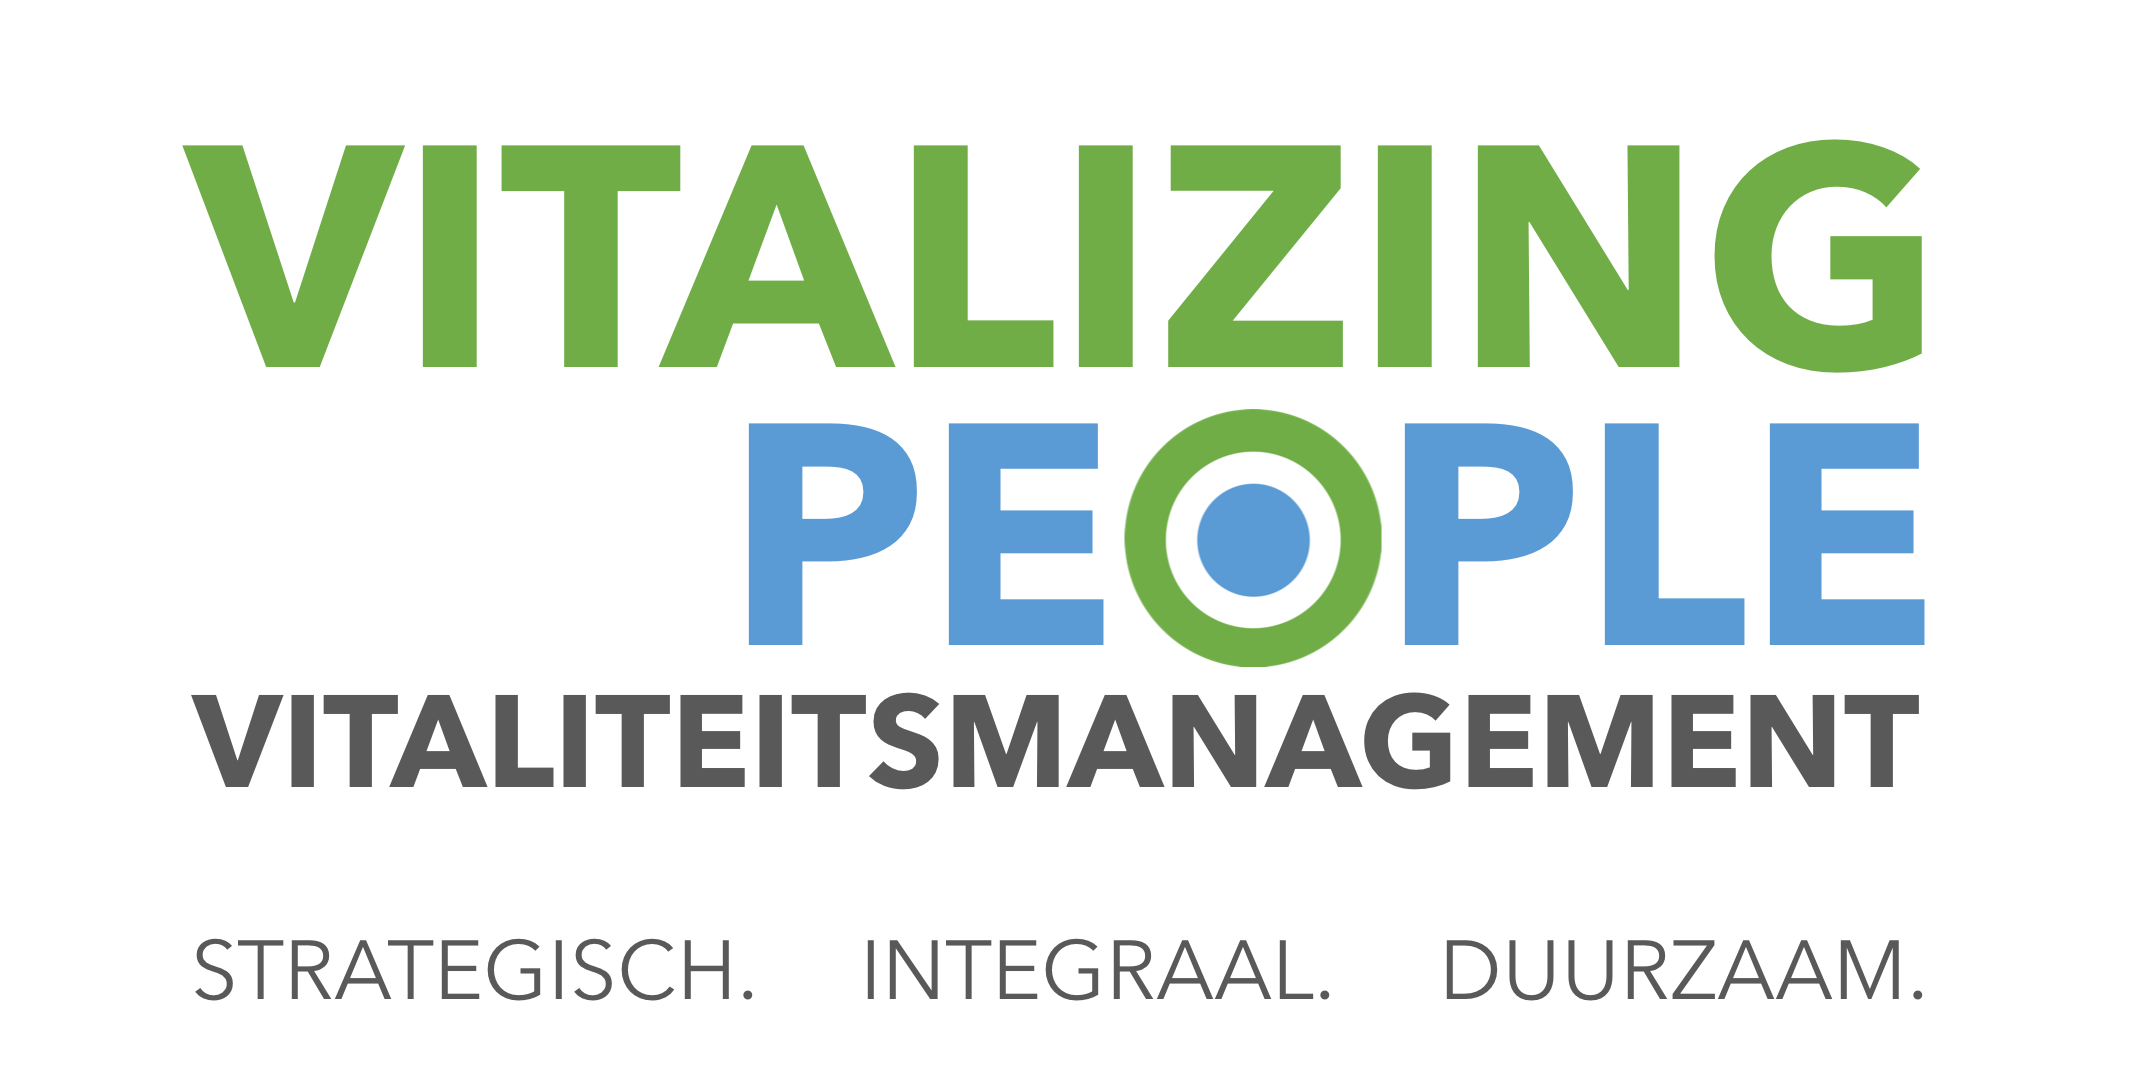 Vitalizing People | Strategisch Vitaliteitsmanagement Logo